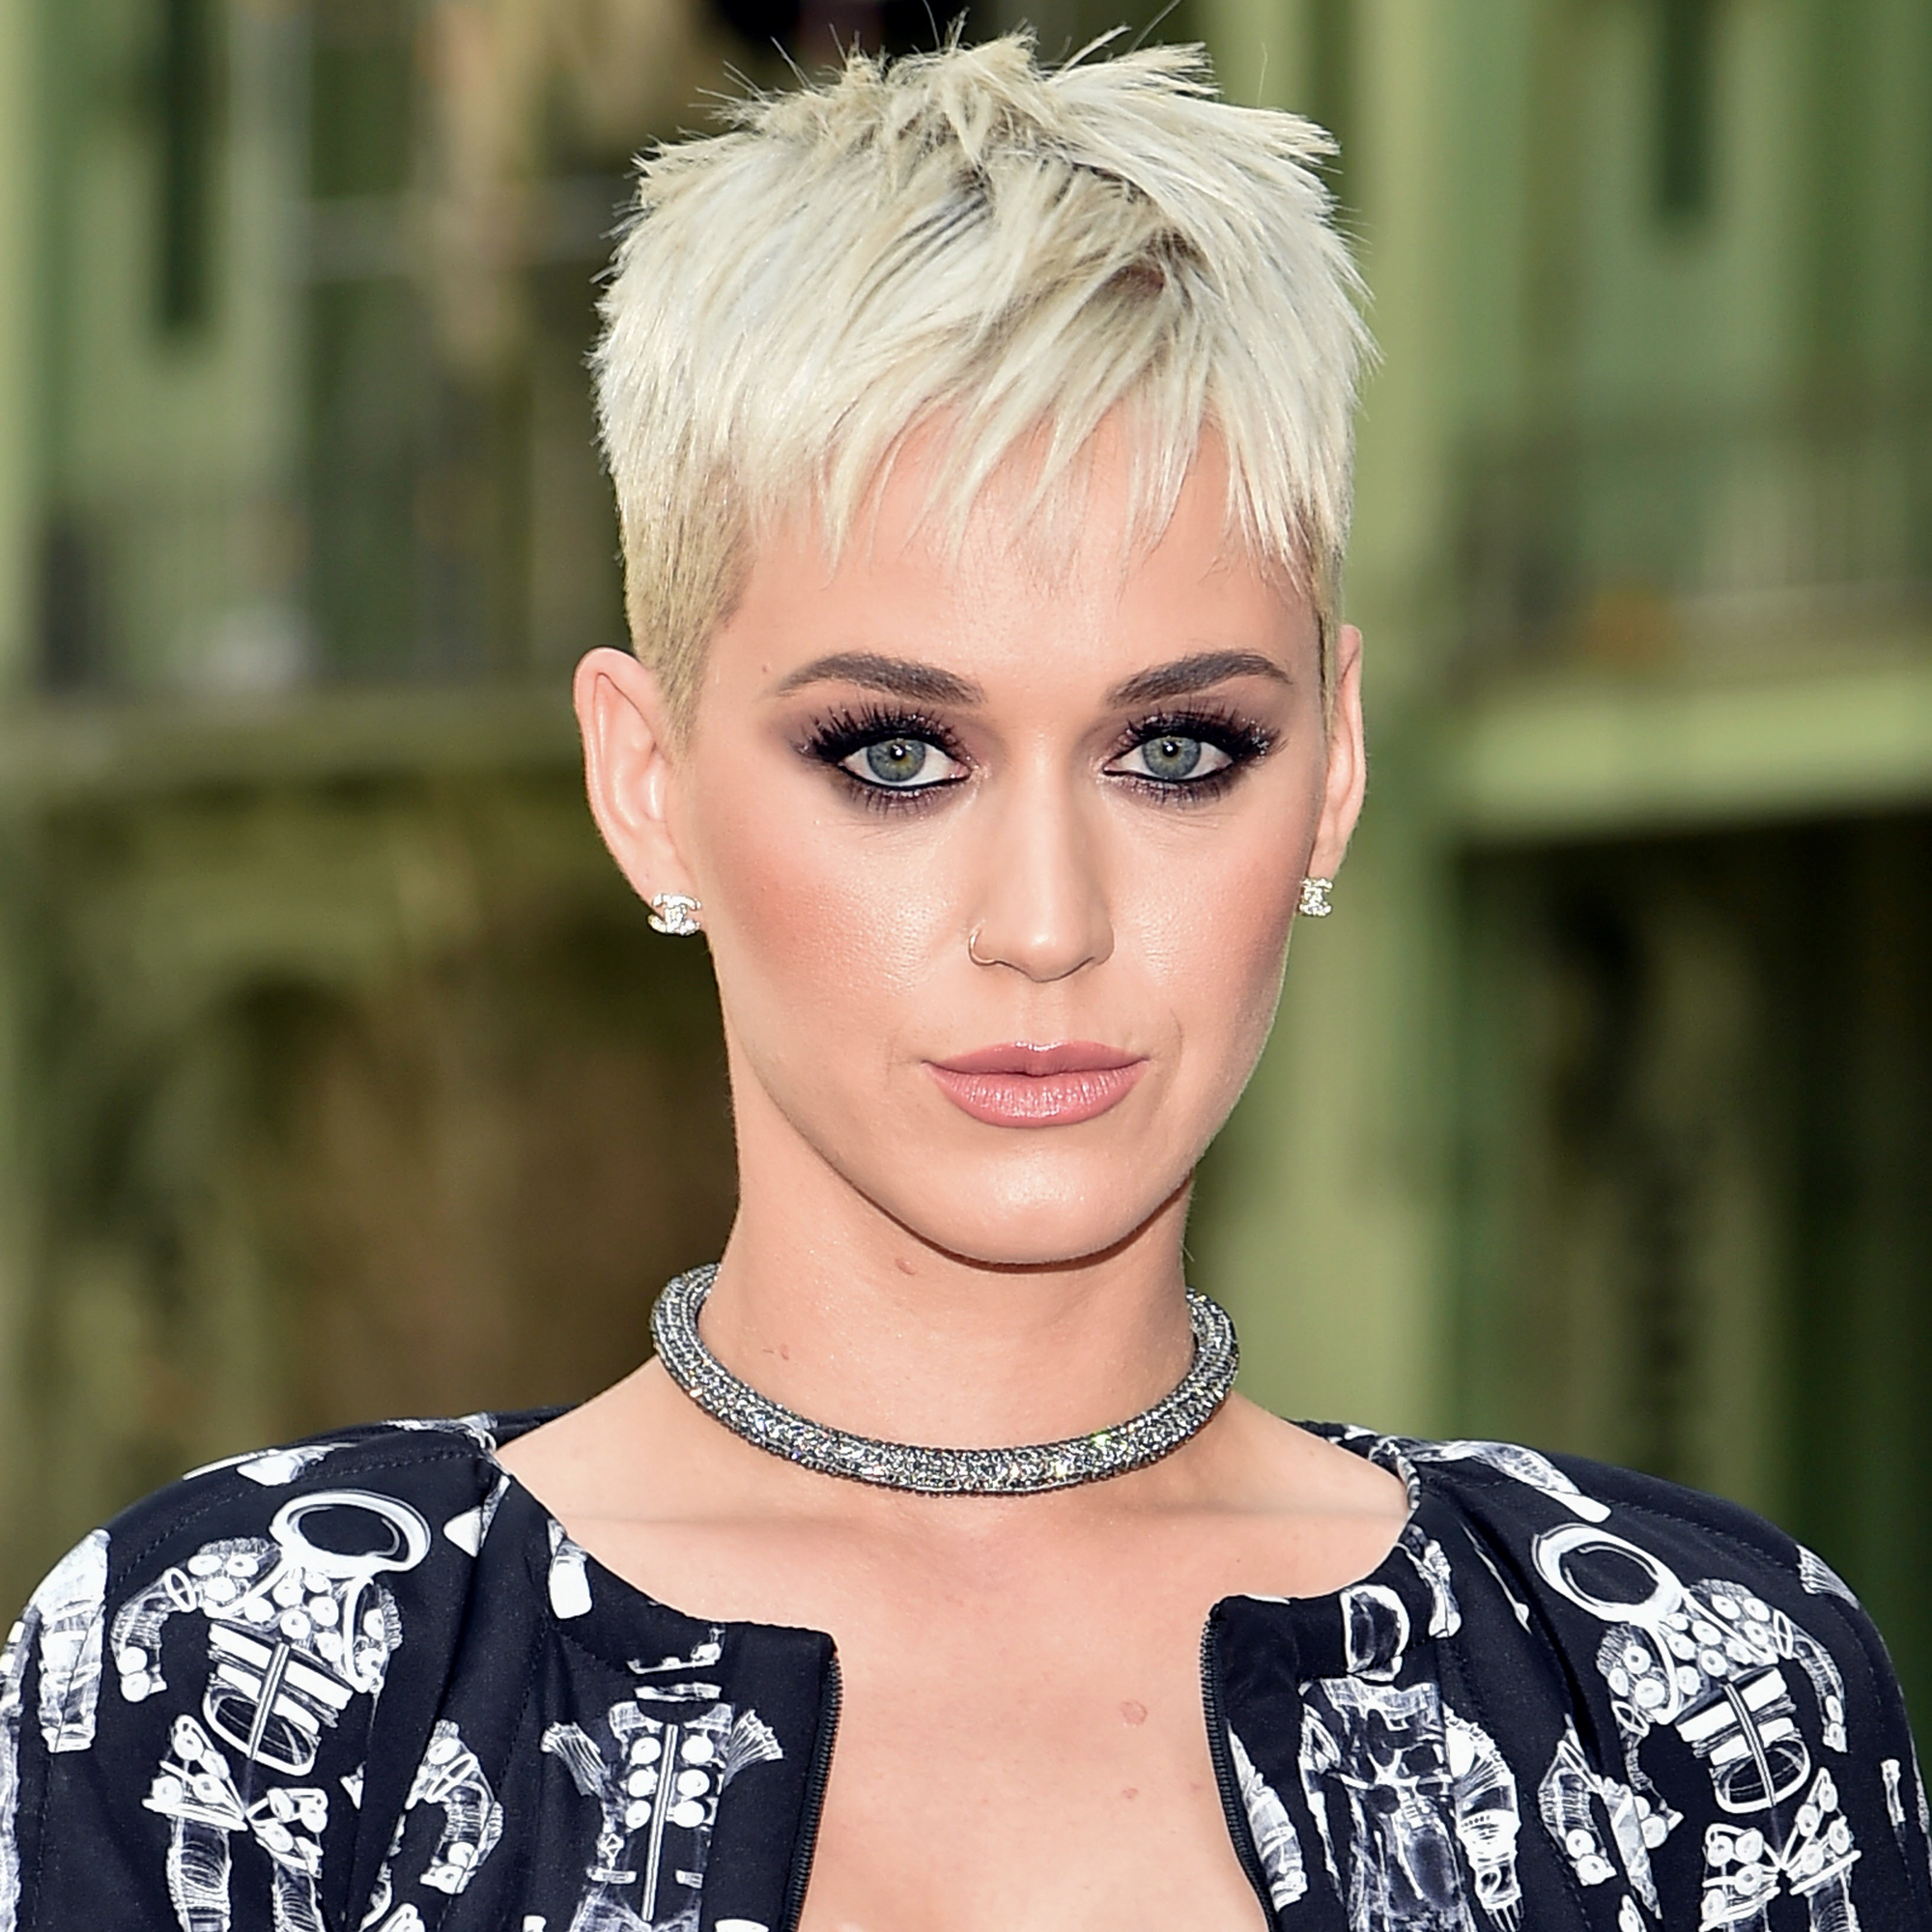 081417-katy-perry-lead